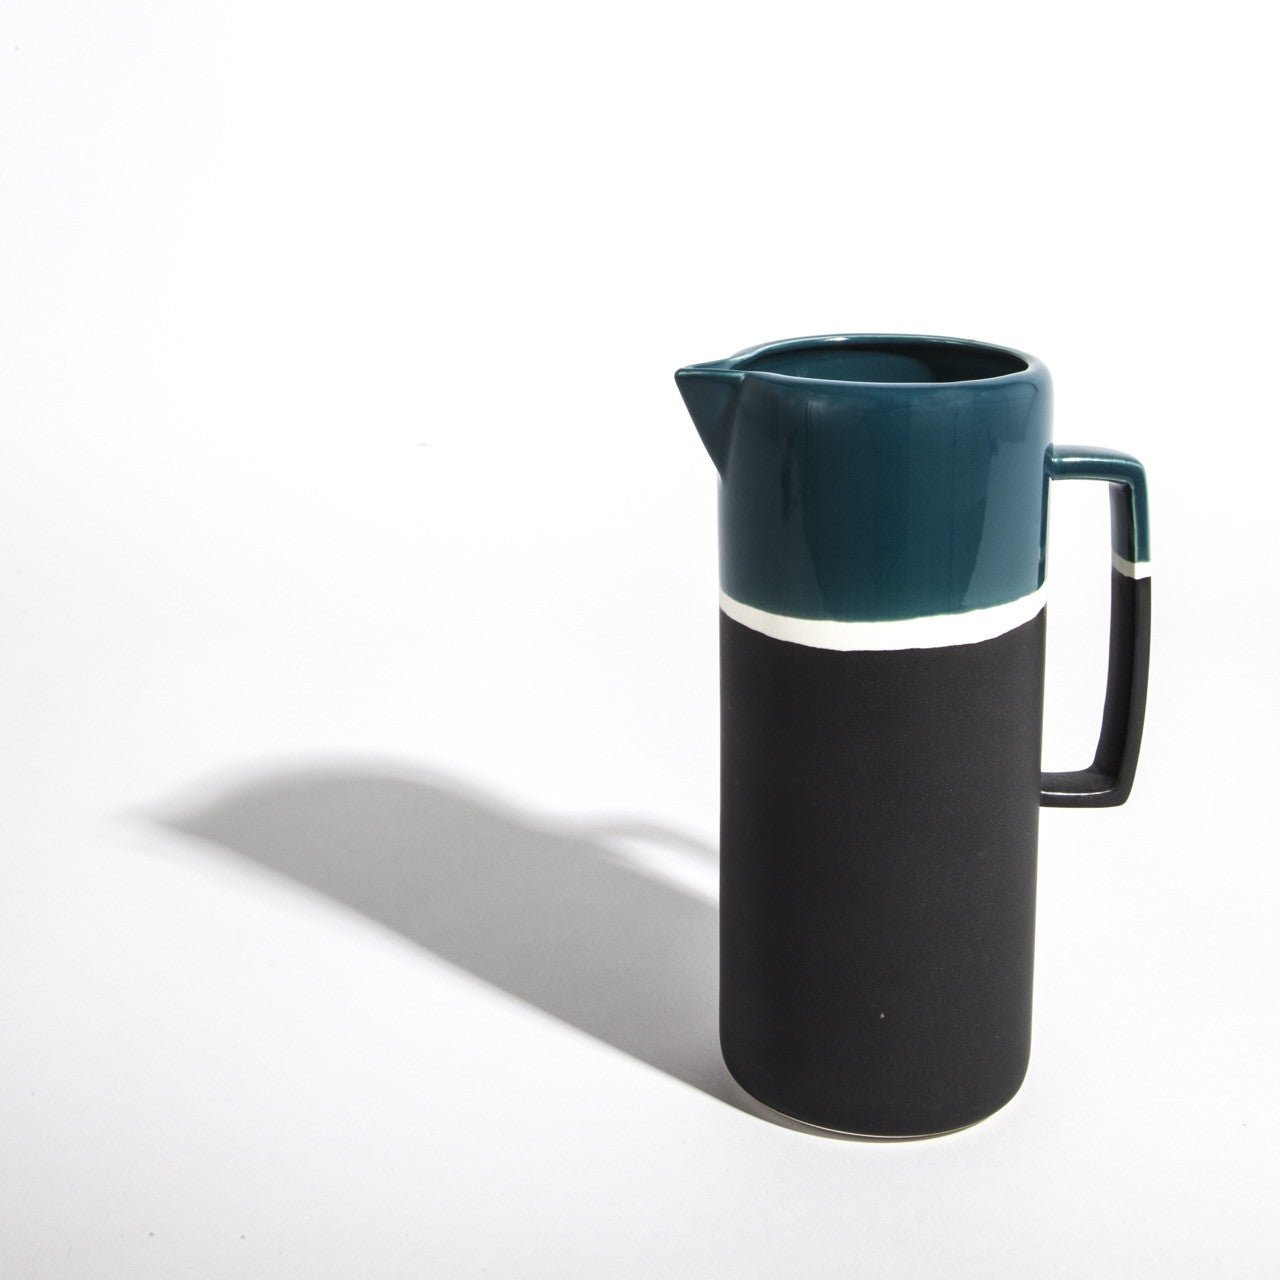 Graphic lines, deep colours and double finish effect matte and shiny, this retro-looking jug has been designed by Maison Sarah Lavoine and handmade traditionally by skilled artisans at Jars Ceramists in southern France.